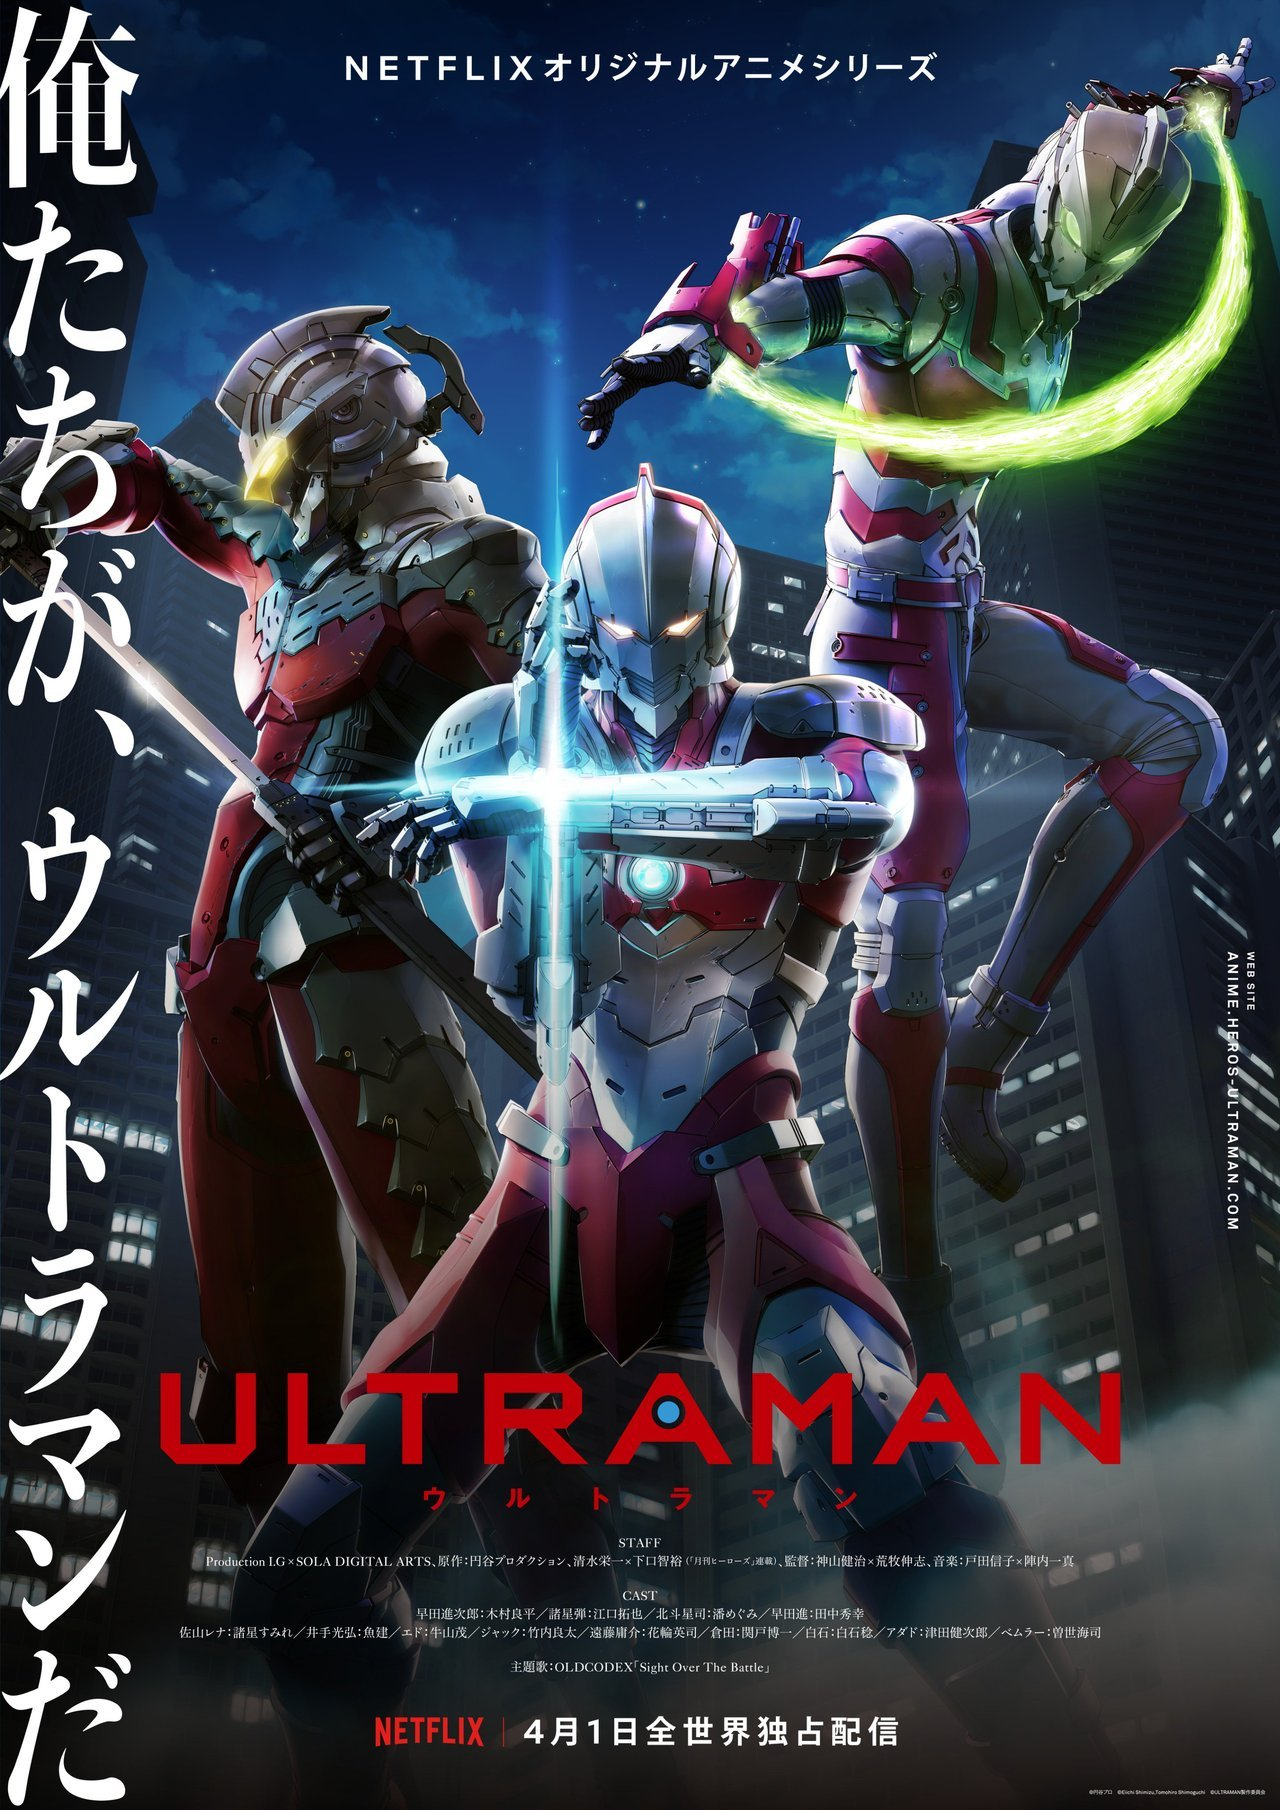 """New main visual for the """"ULTRAMAN"""" 3DCG anime. The 13-episode series will premiere worldwide on Netflix on April 1st. -Synposis-""""""""Several years have passed since the events of Ultraman, with the legendary """"Giant of Light"""" now a memory, as it is..."""